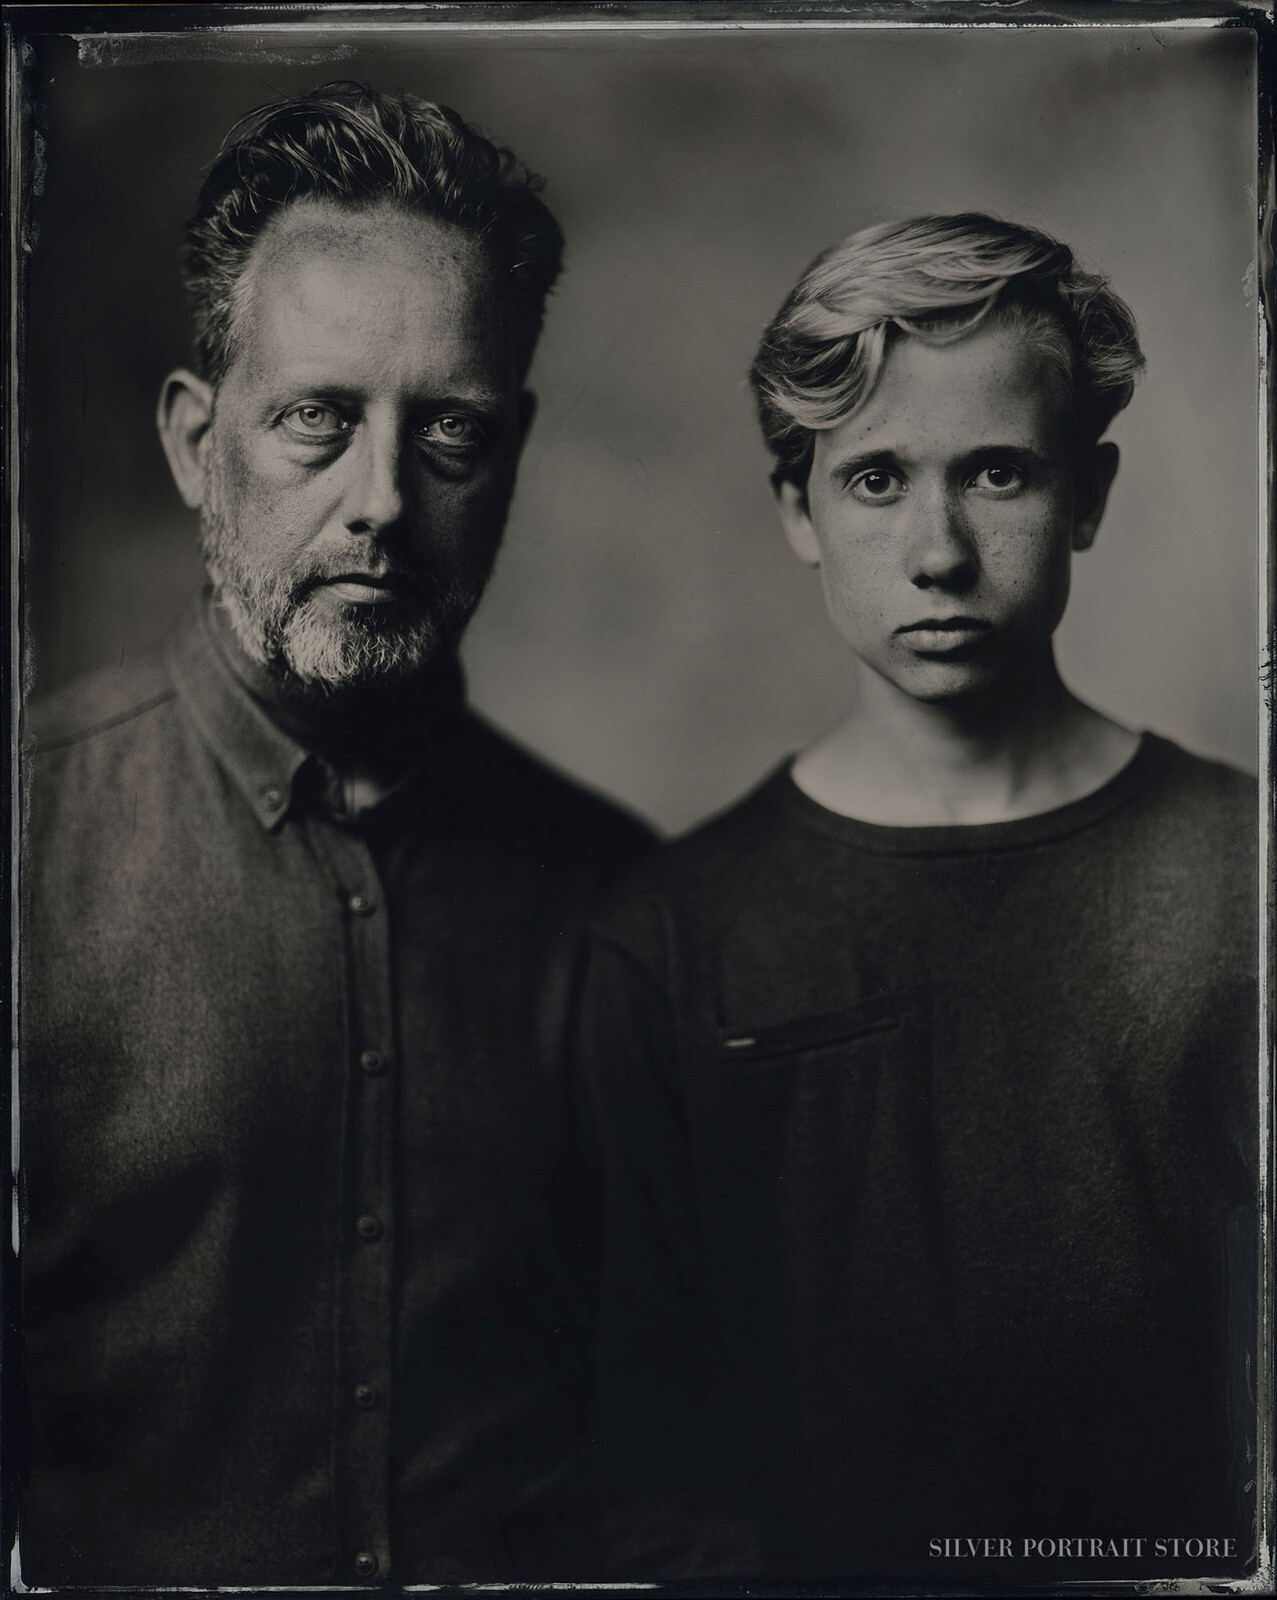 Thierry & Govert-Silver Portrait Store-scan from Wet plate collodion-Tintype 20 x 25 cm.